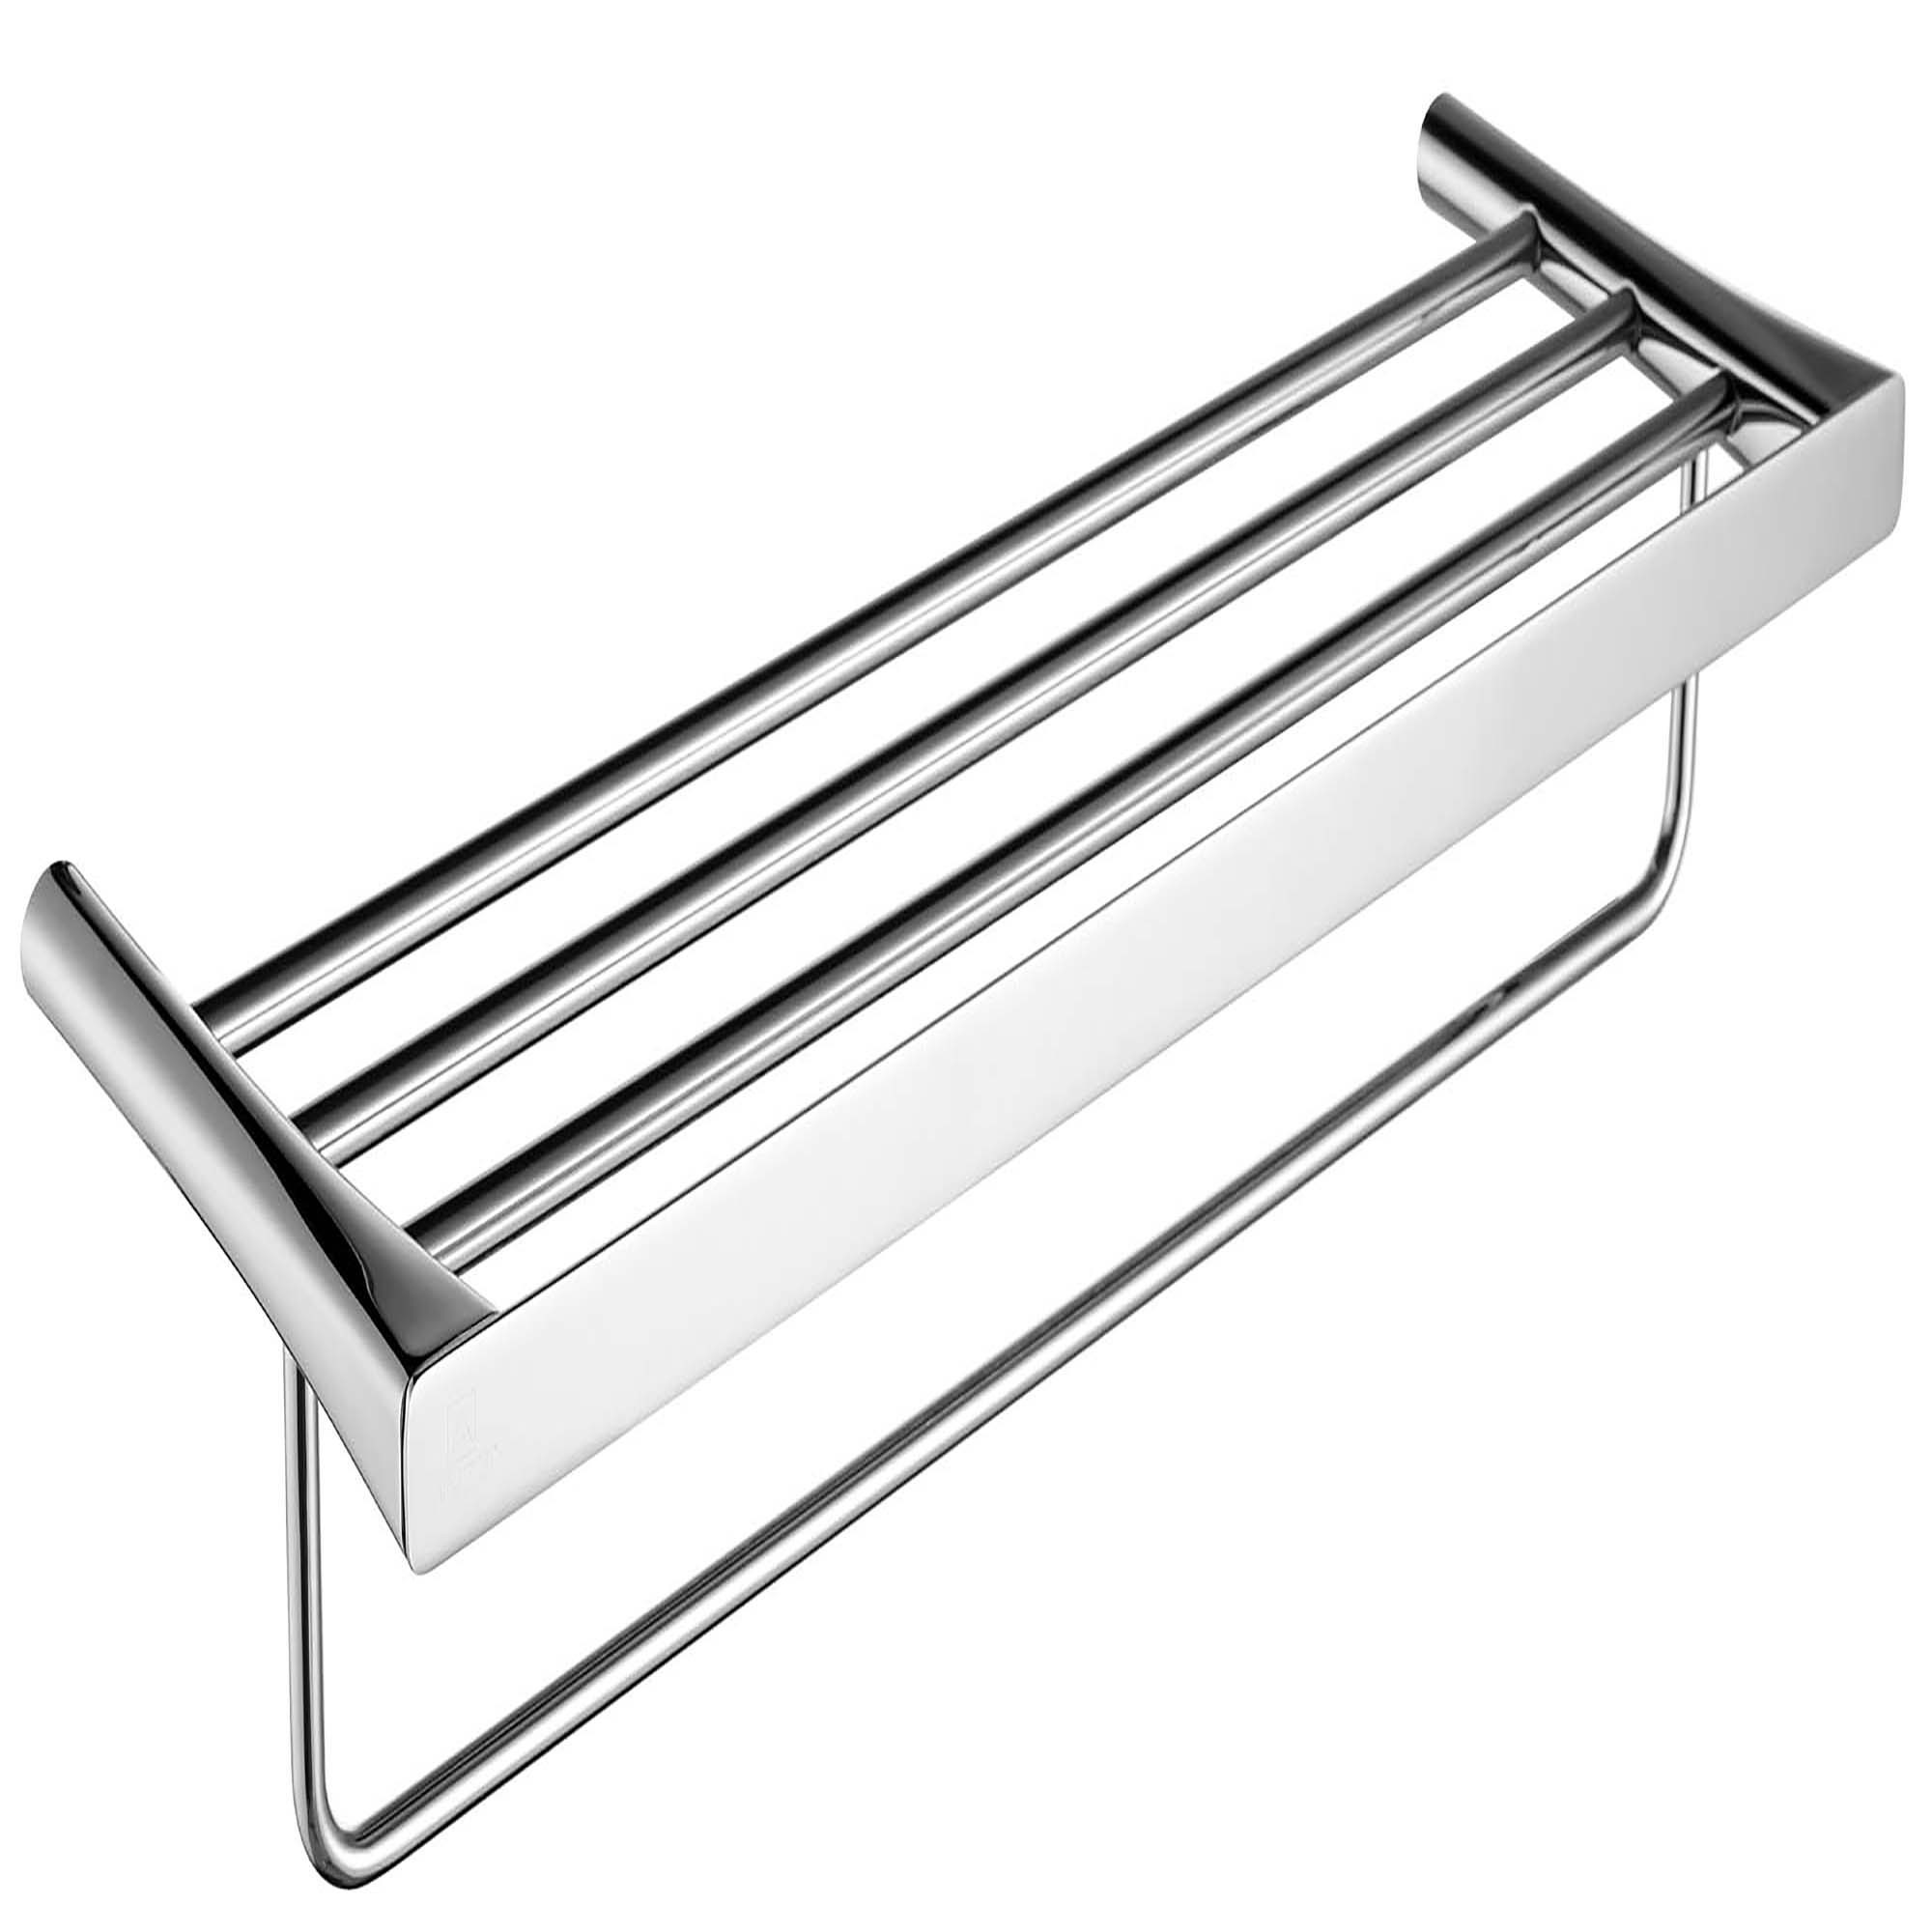 ANZZI AC-AZ058 Towel Rack With Integrated Towel Bar In Polished Chrome